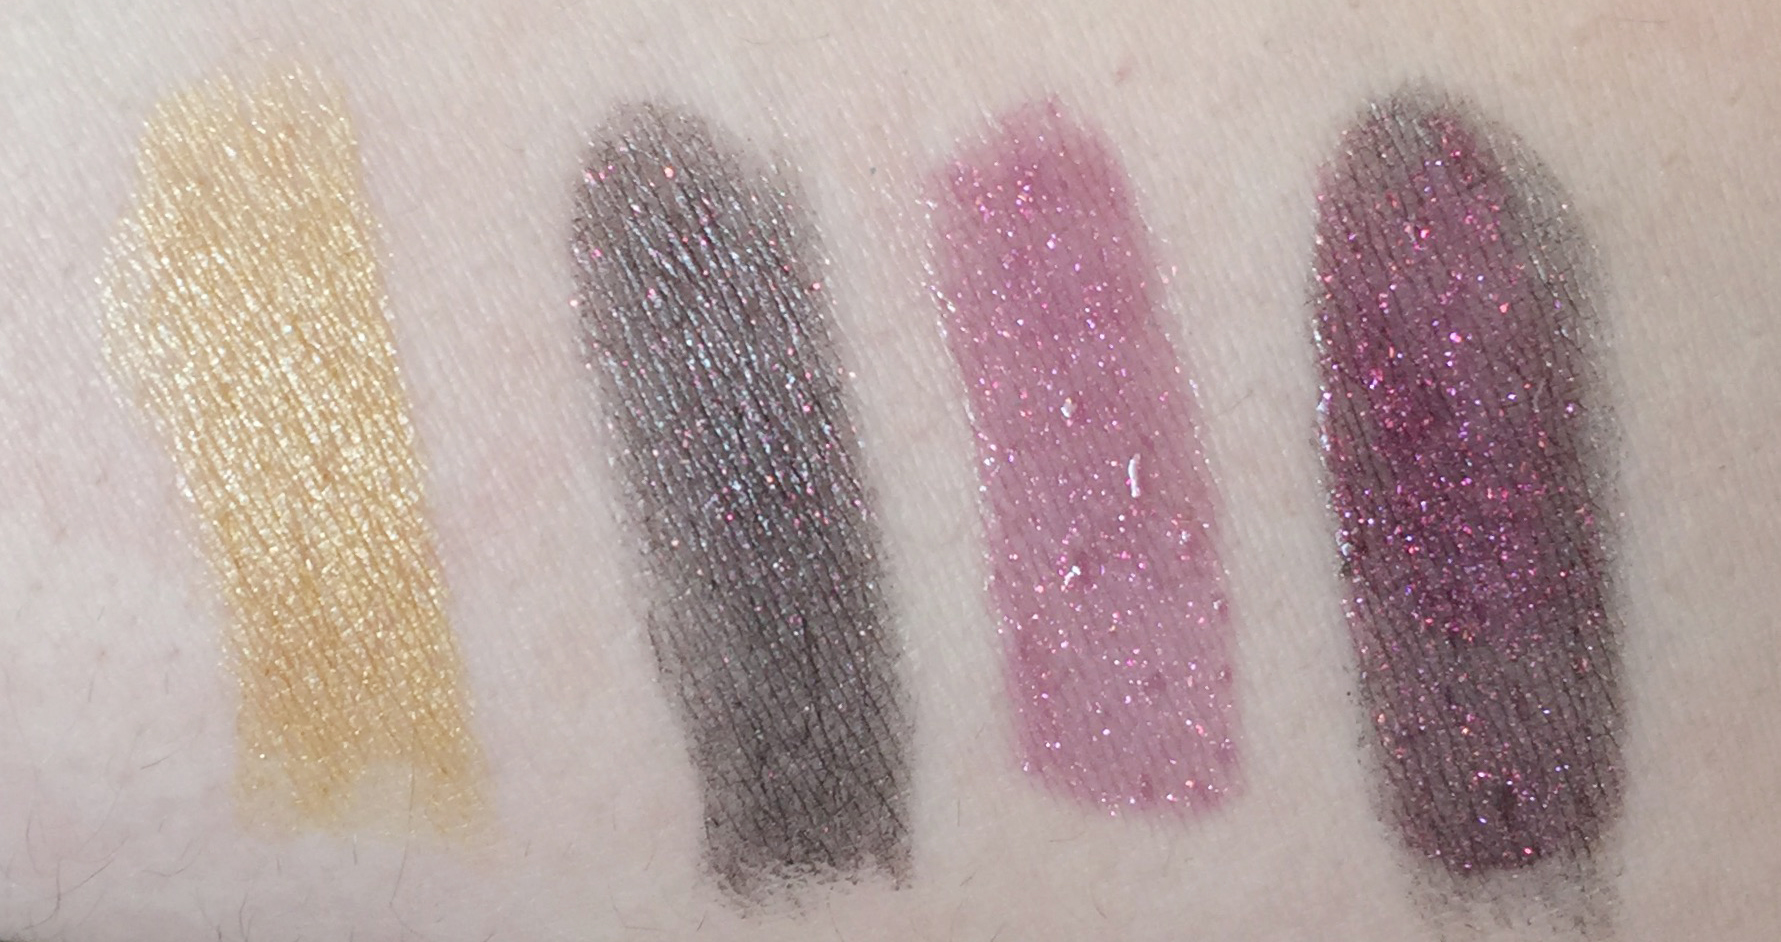 (L-R)M.A.C x Star Trek Lipsticks in the shades 'The Enemy Within' + 'Kling-It-On'and Lip Glass in 'Khaaannn!' The last swatch is a combination of 'Kling-It-On' lipstick and 'Khaaannn!' Lip Glass - shot in natural light